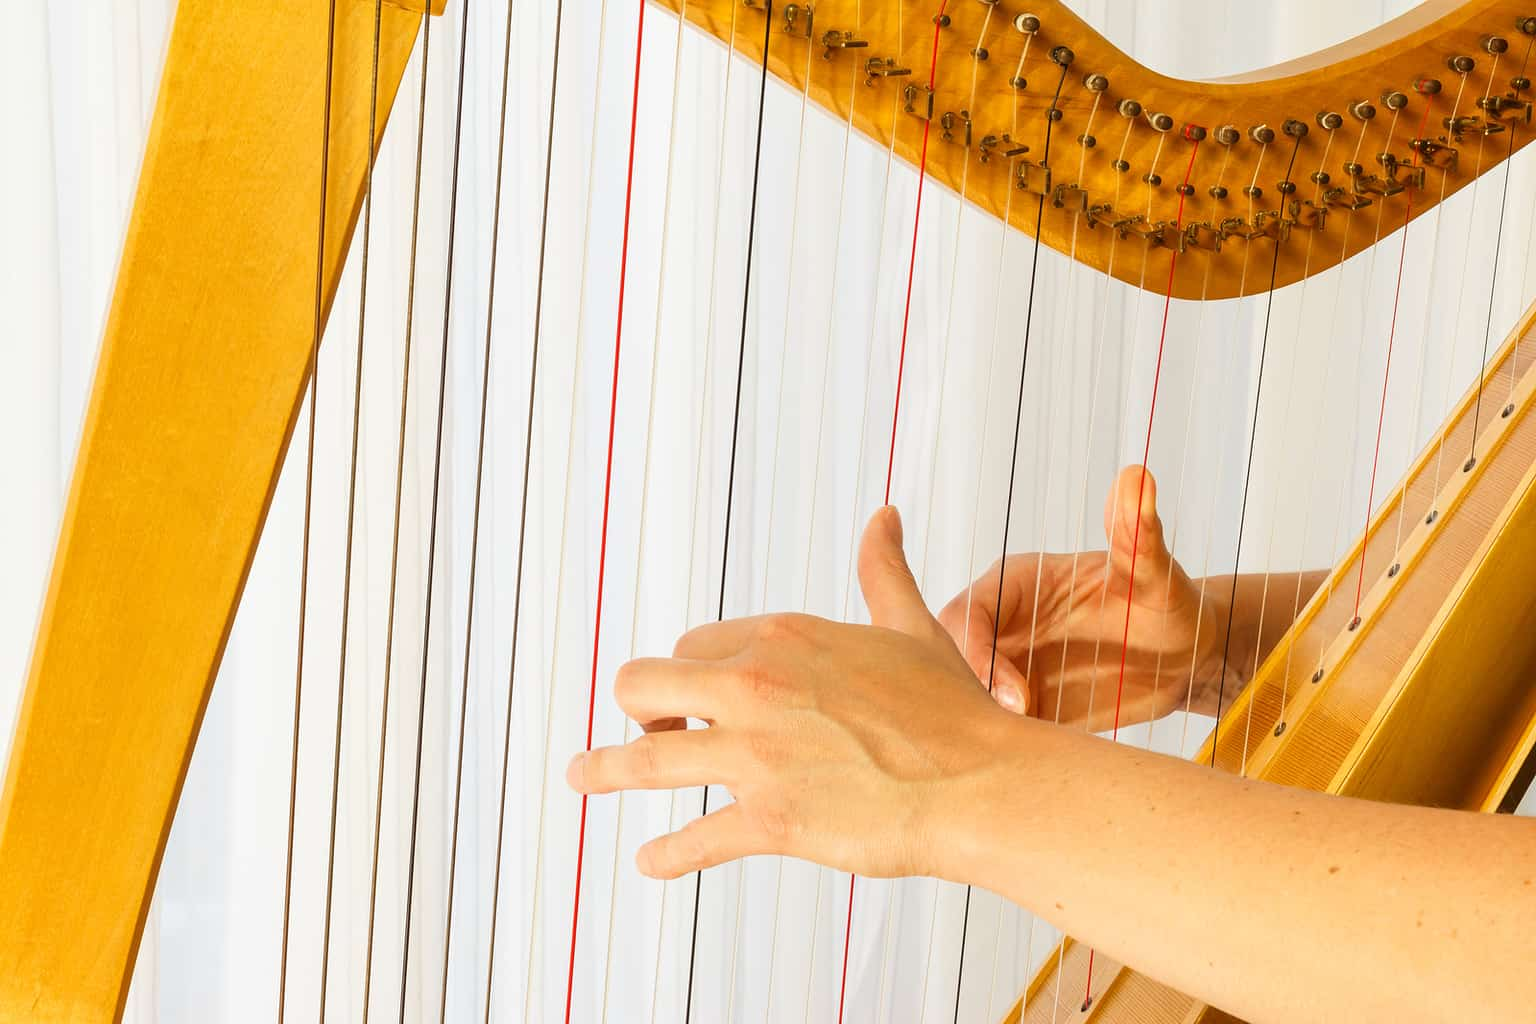 Playing the Celtic Harp